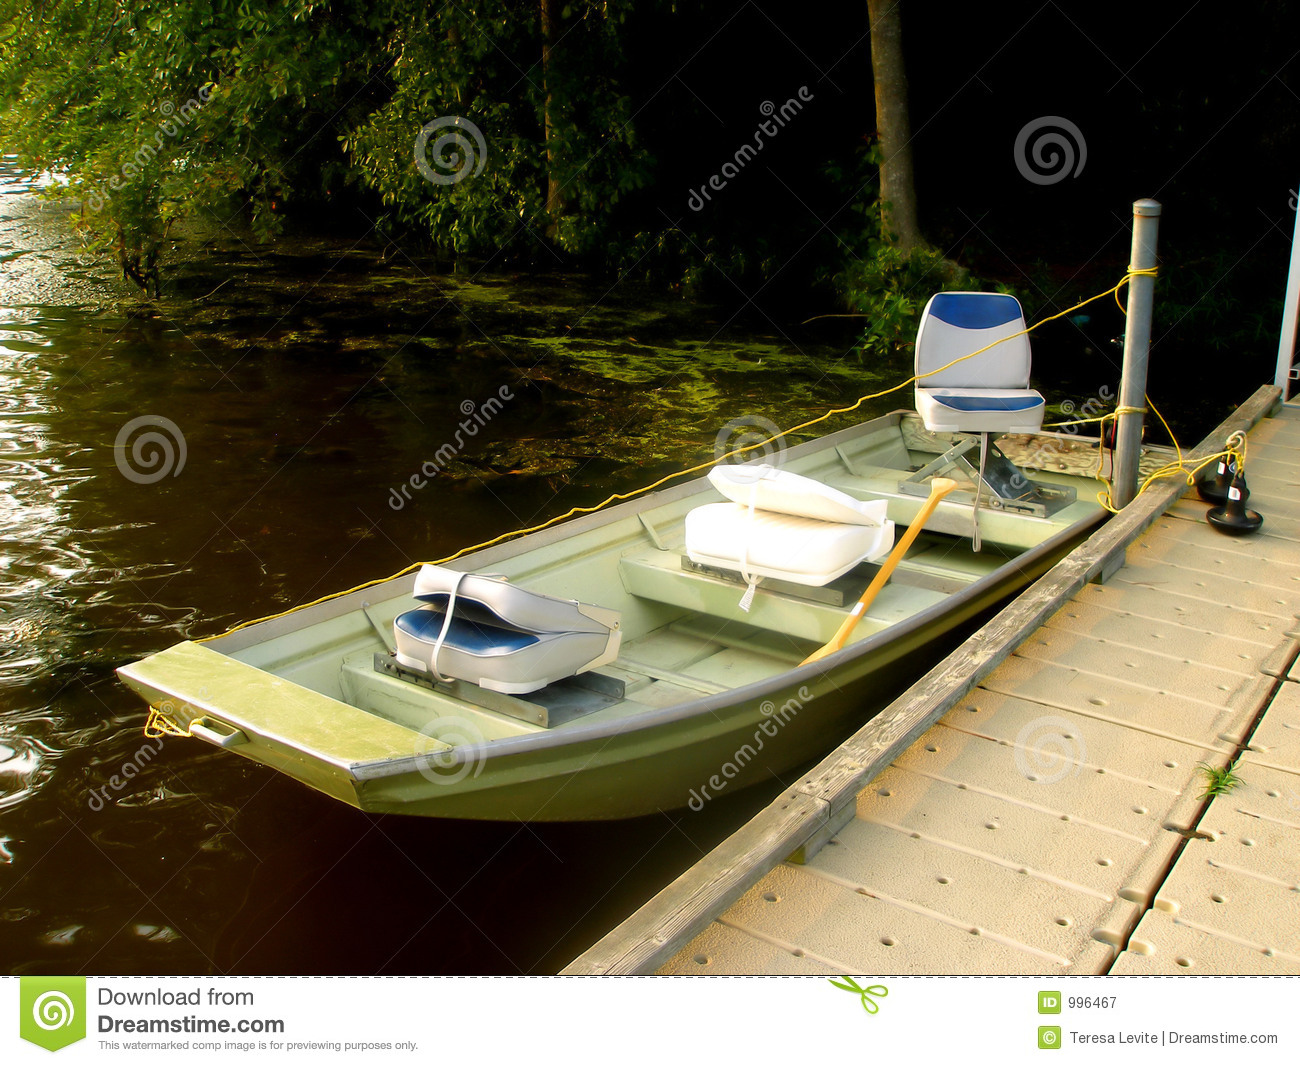 Small sport fishing boat in lake royalty free stock for Pond fishing boats